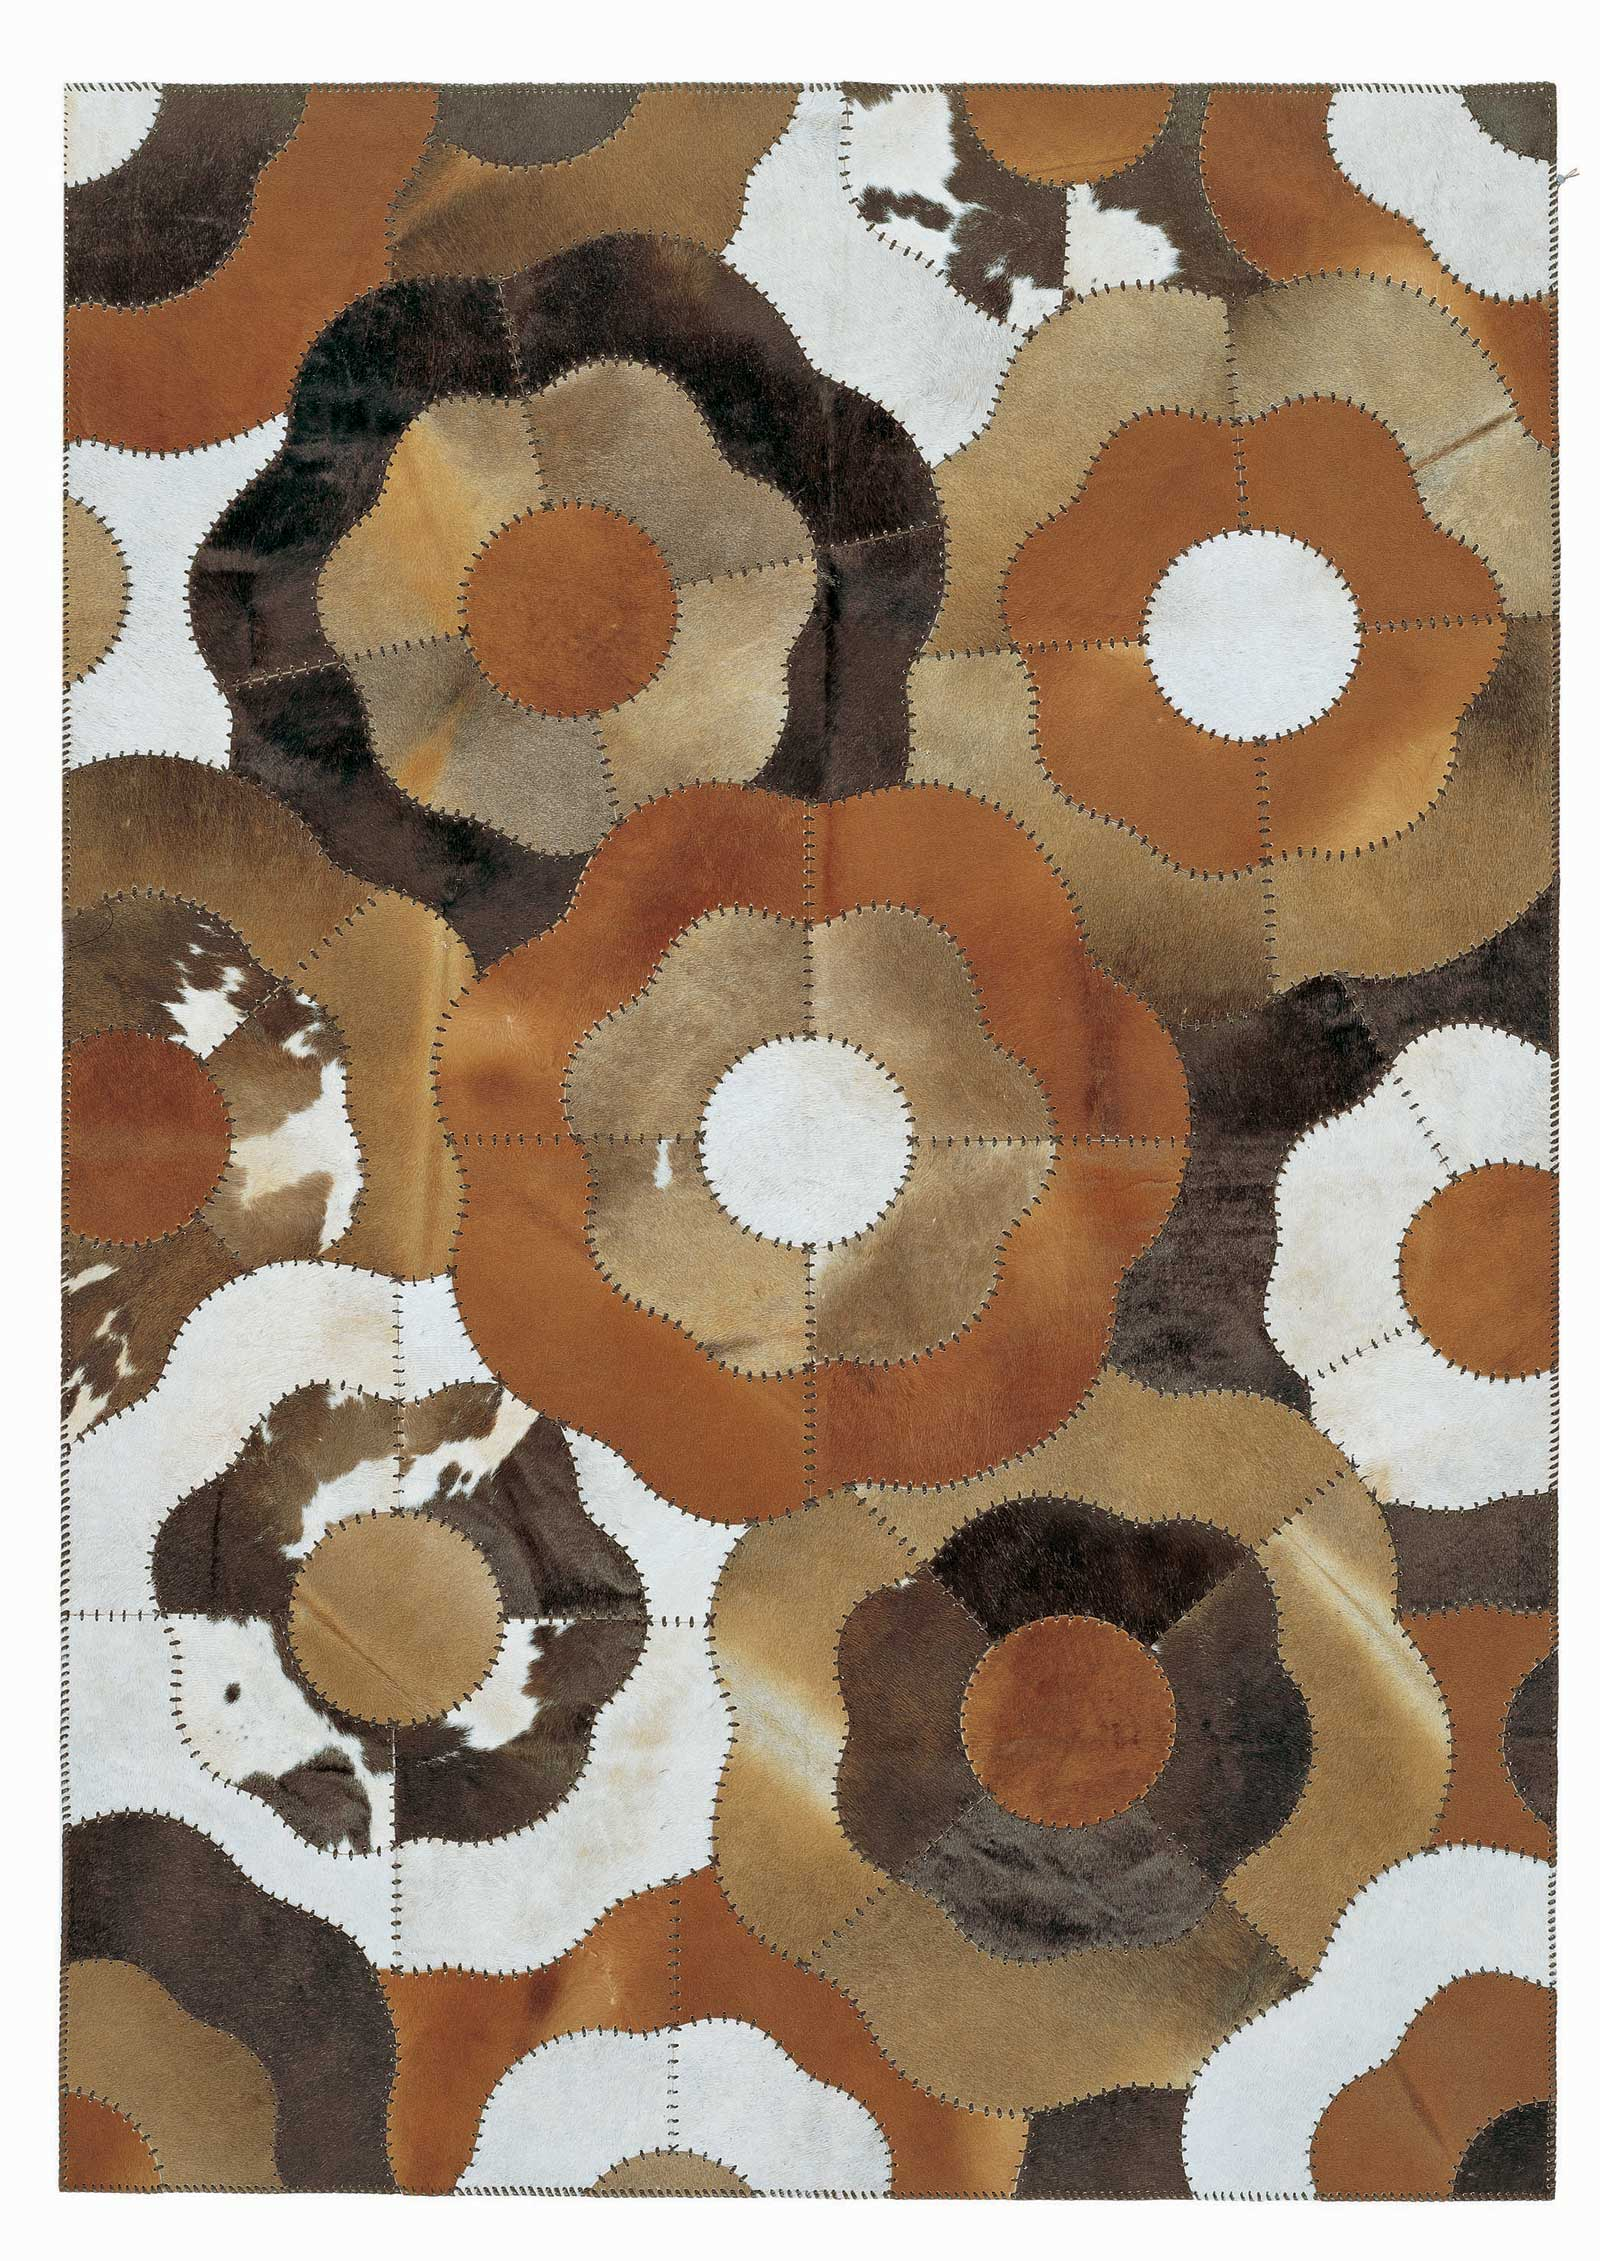 charming cowhide patchwork rug in mixed brindle with floral motif for floor decor ideas